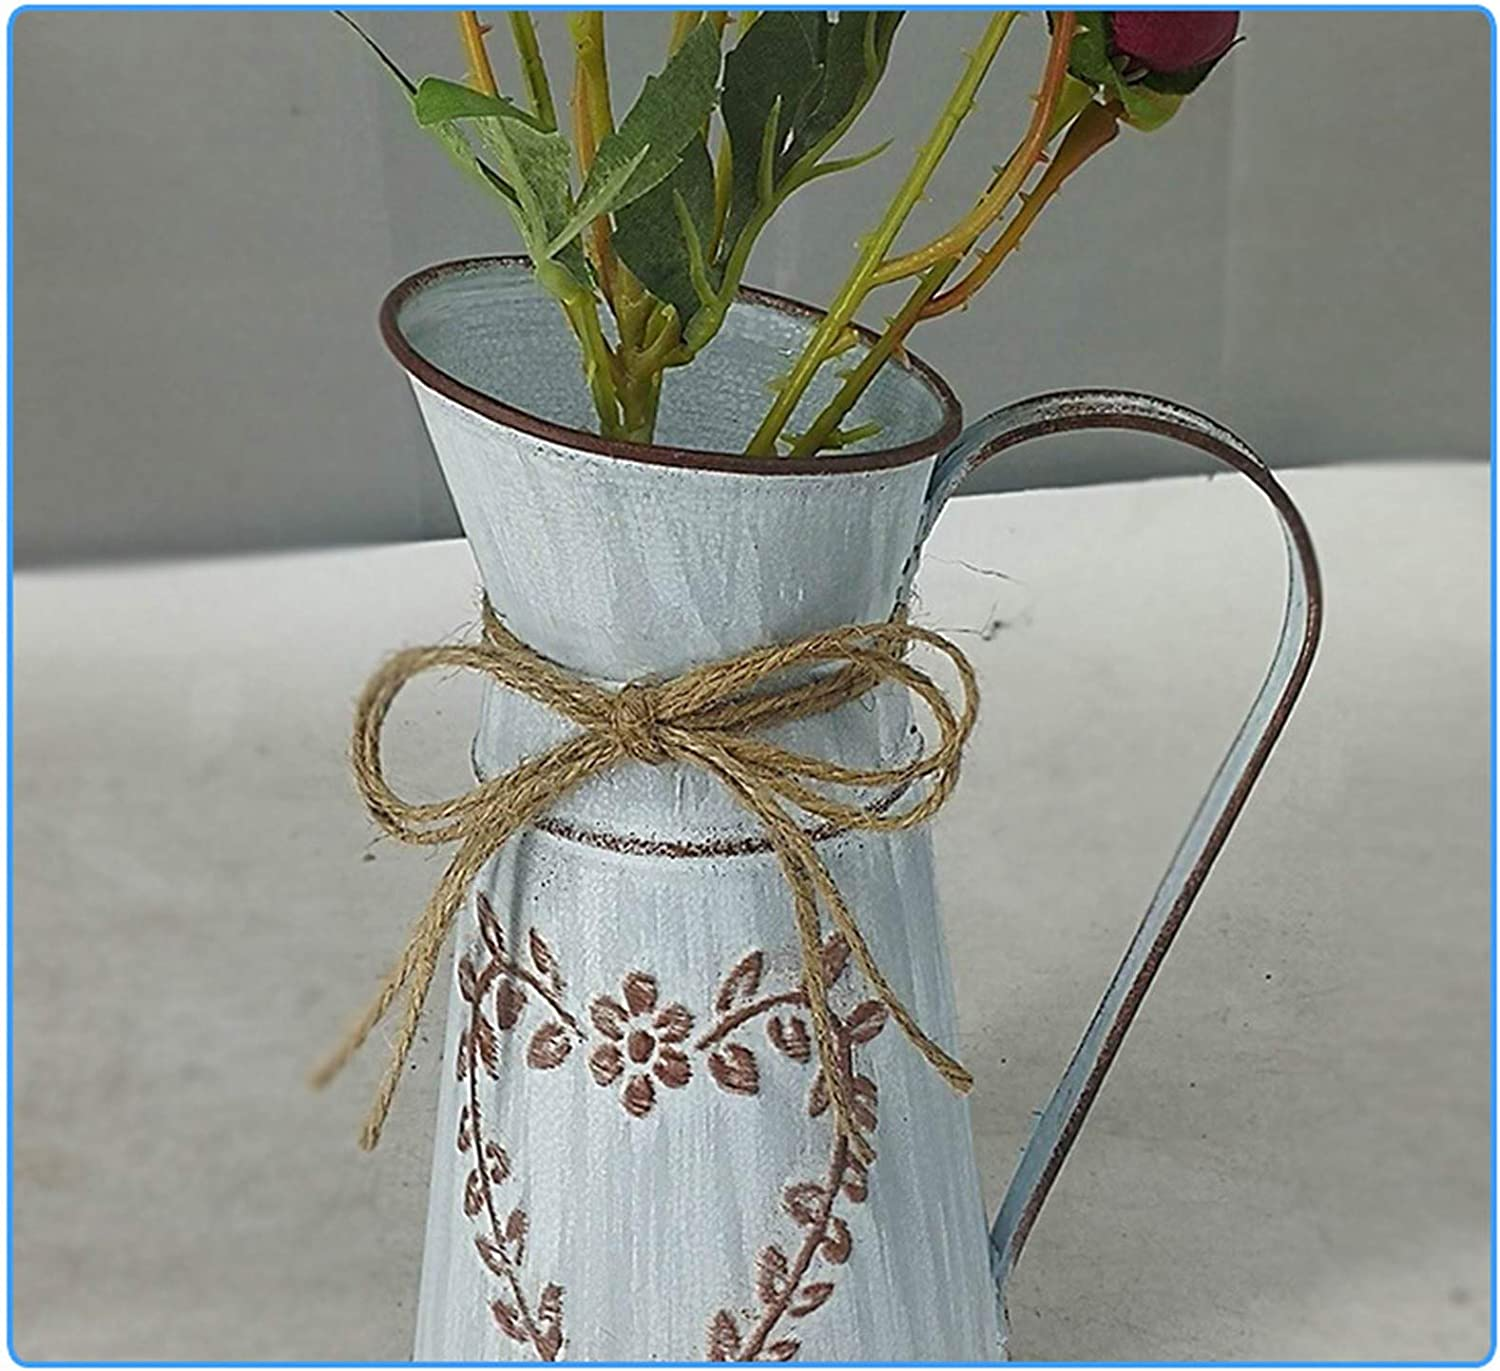 94 inch Vintage Metal Galvanized Flower Vase - Table Centerpiece Rustic Home Decor for Fresh and Dried, Imitation Flower Vase Arrangements for Home and Weddings